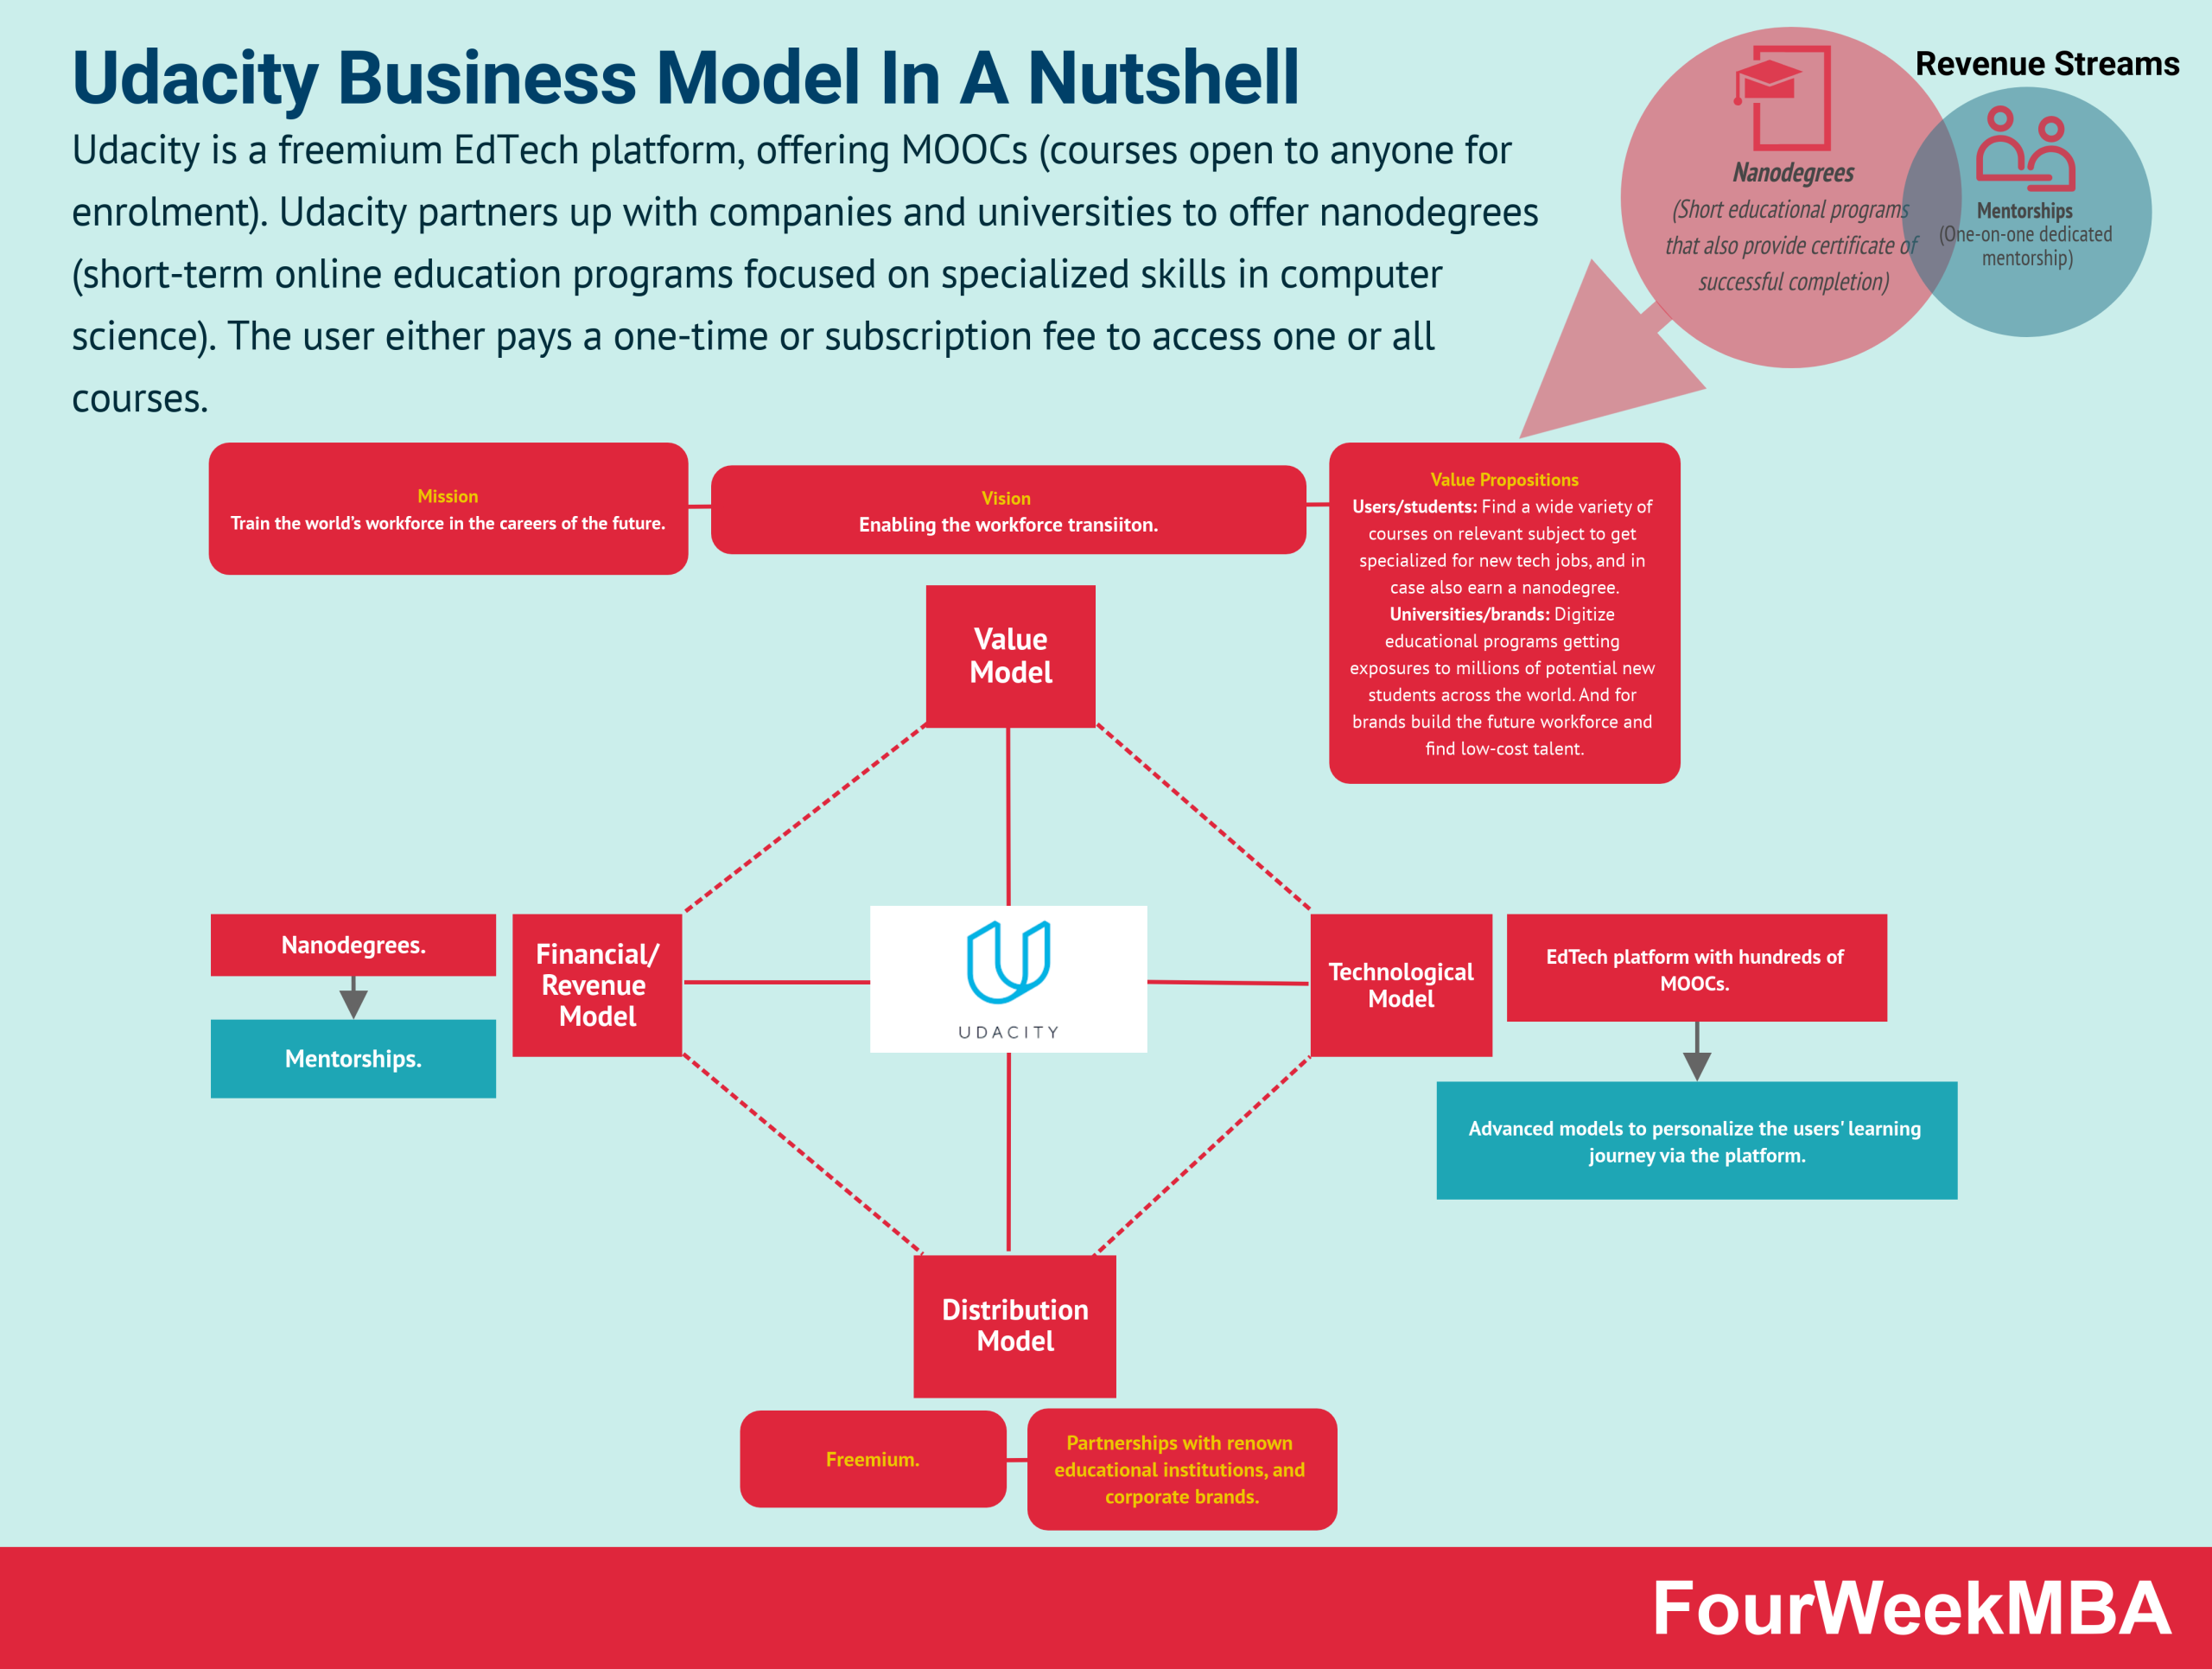 udacity-business-model